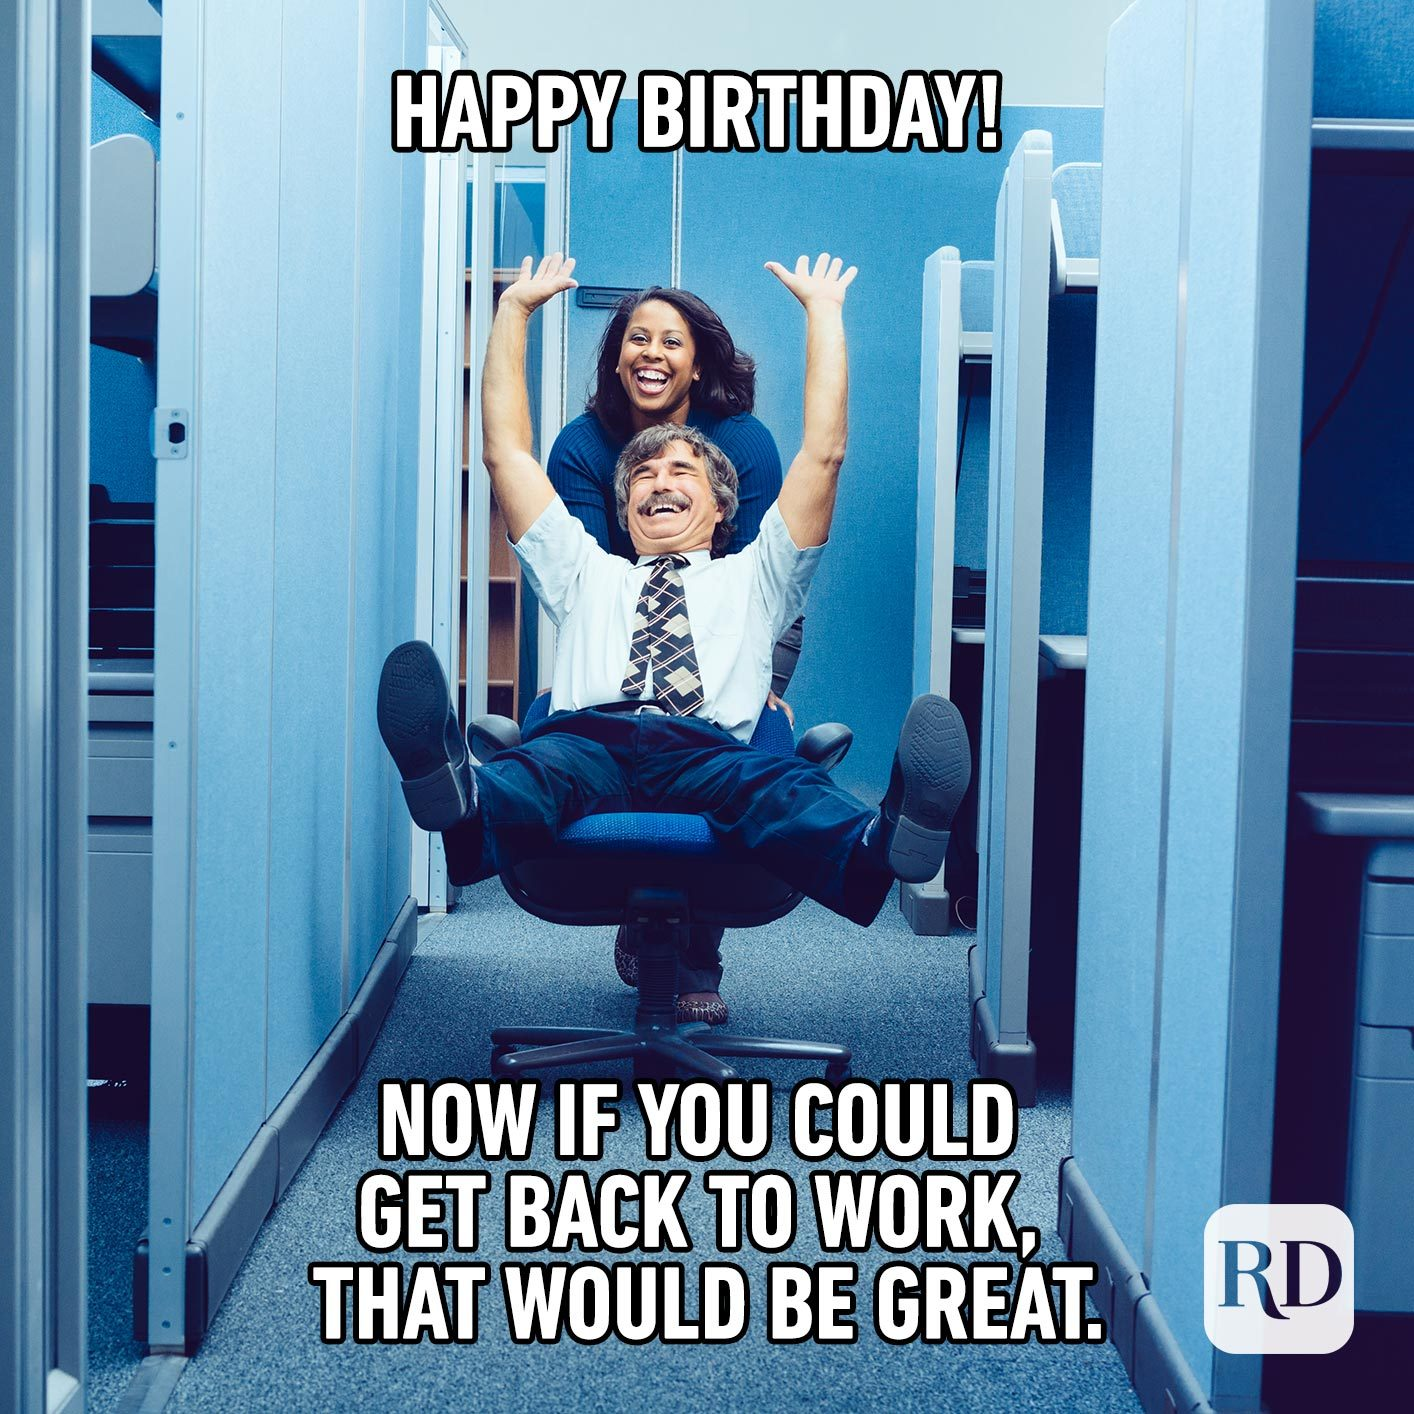 Happy Birthday! Now if you could get back to work, that would be great.